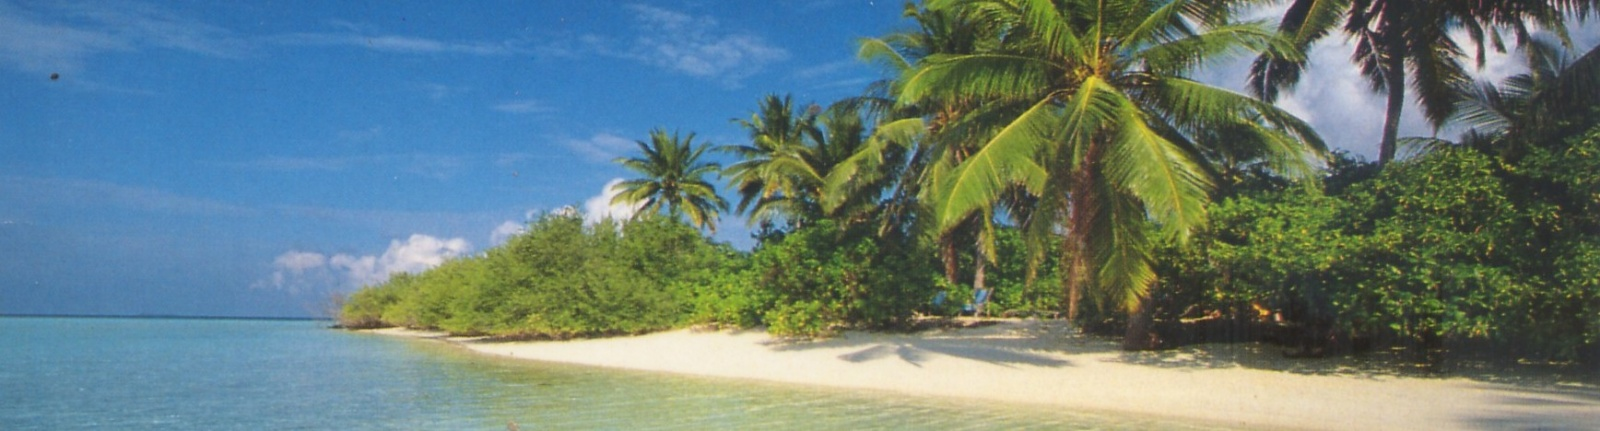 Click image for larger version  Name:Richard's house Rawai Beach.jpg Views:115 Size:218.1 KB ID:13536